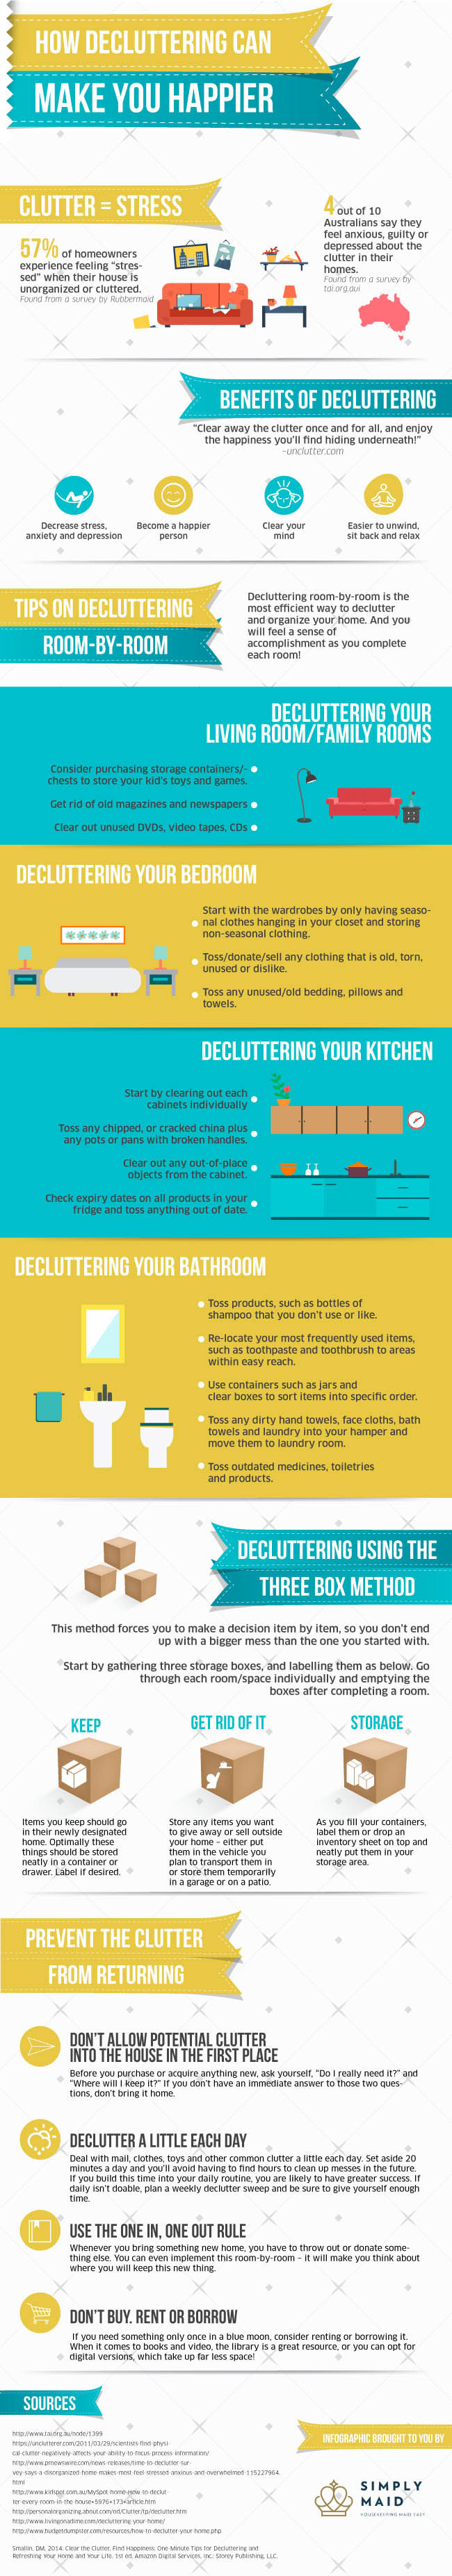 Healthier Living By Decluttering Your Home